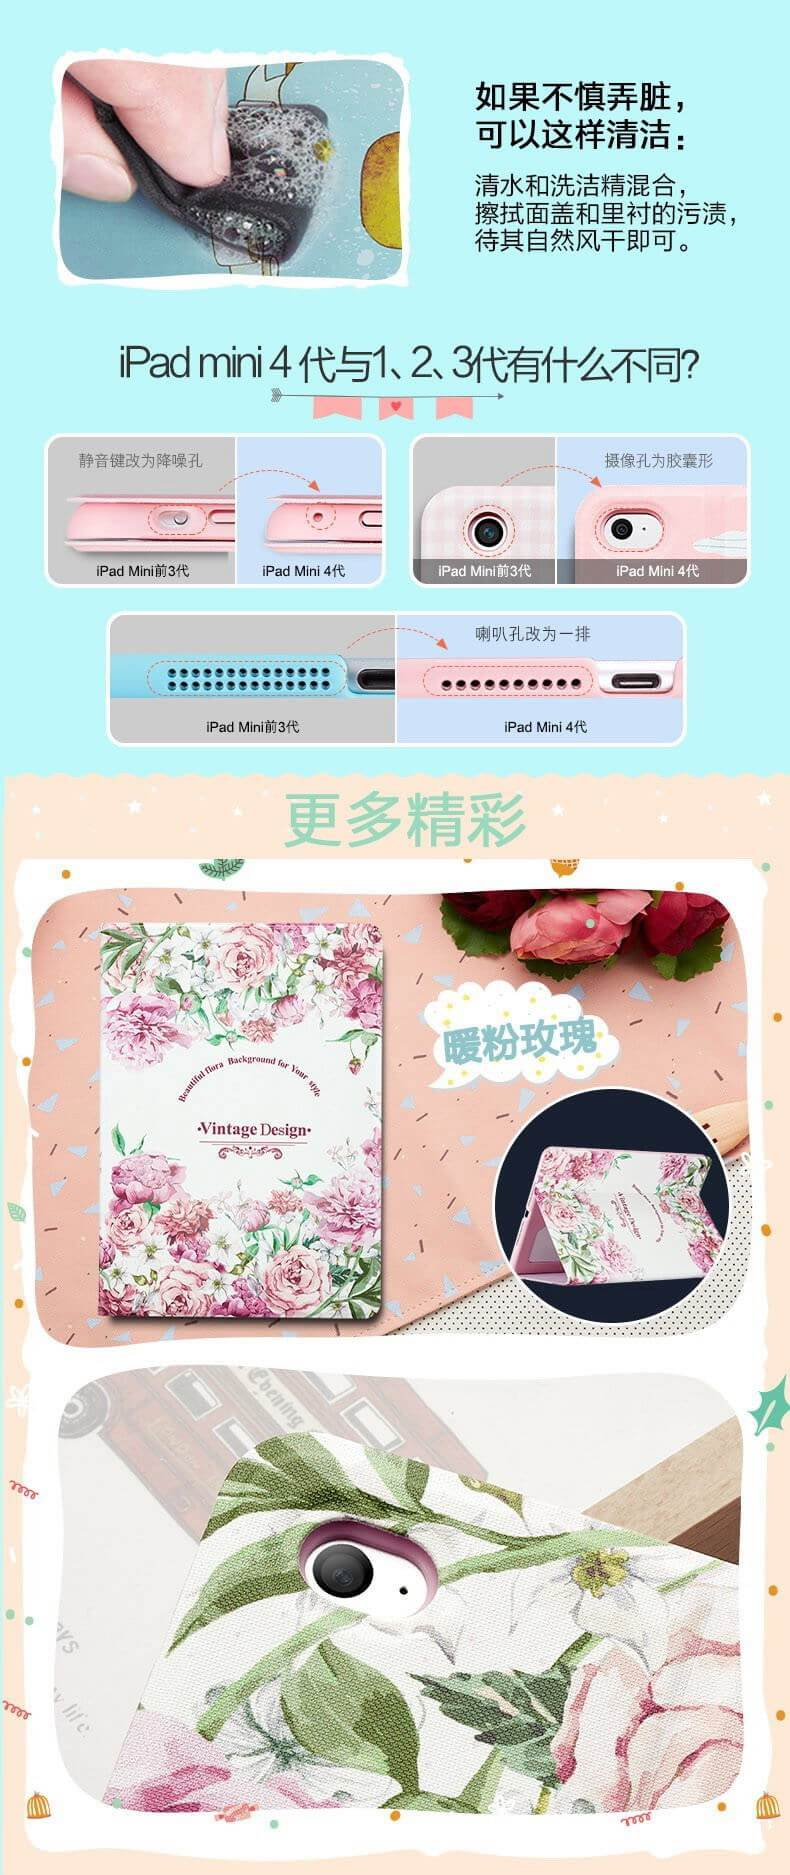 Case with flowers and cute animal pictures for Apple iPad Mini 1, iPad Mini 2, iPad Mini 3, iPad Mini 4